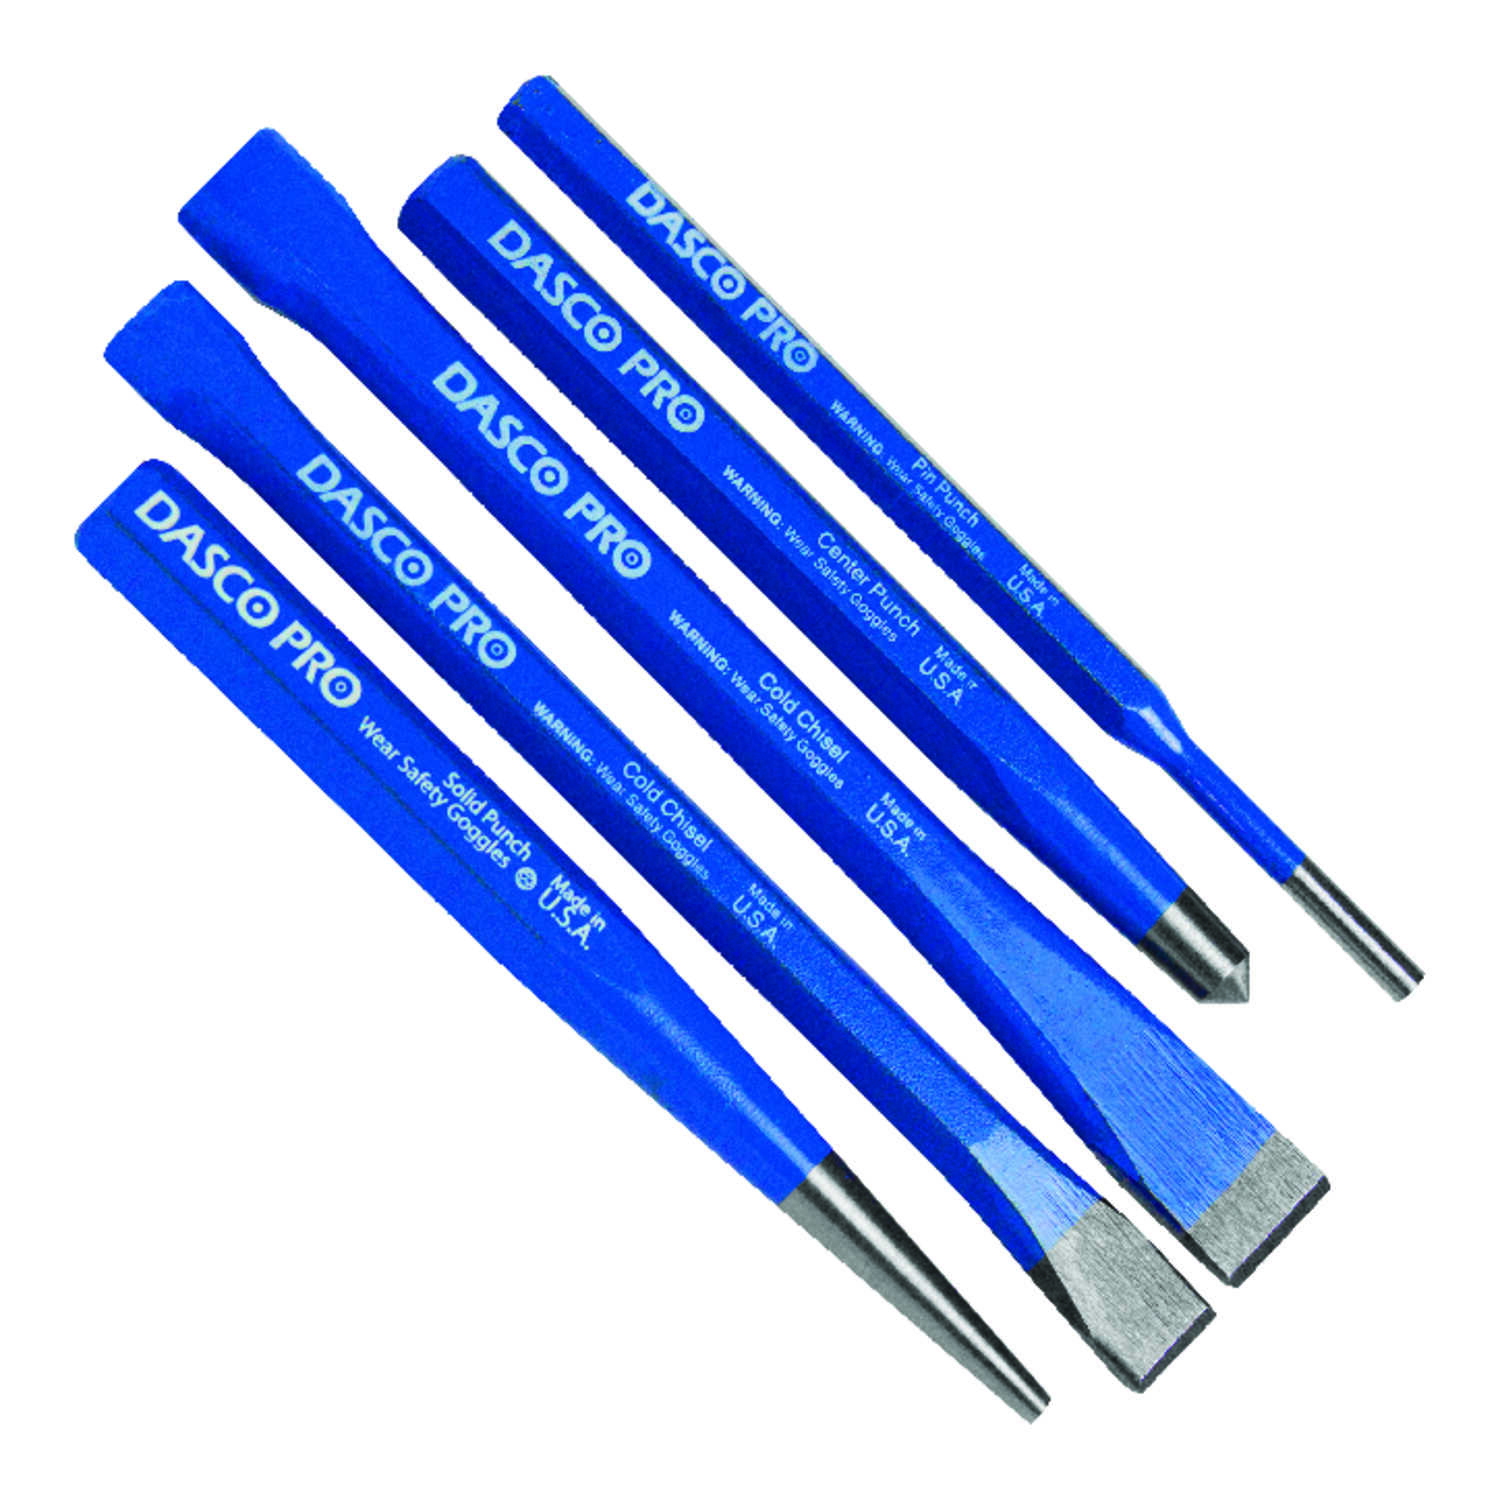 Dasco Pro  High Carbon Steel  Punch and Chisel Set  5 pc.